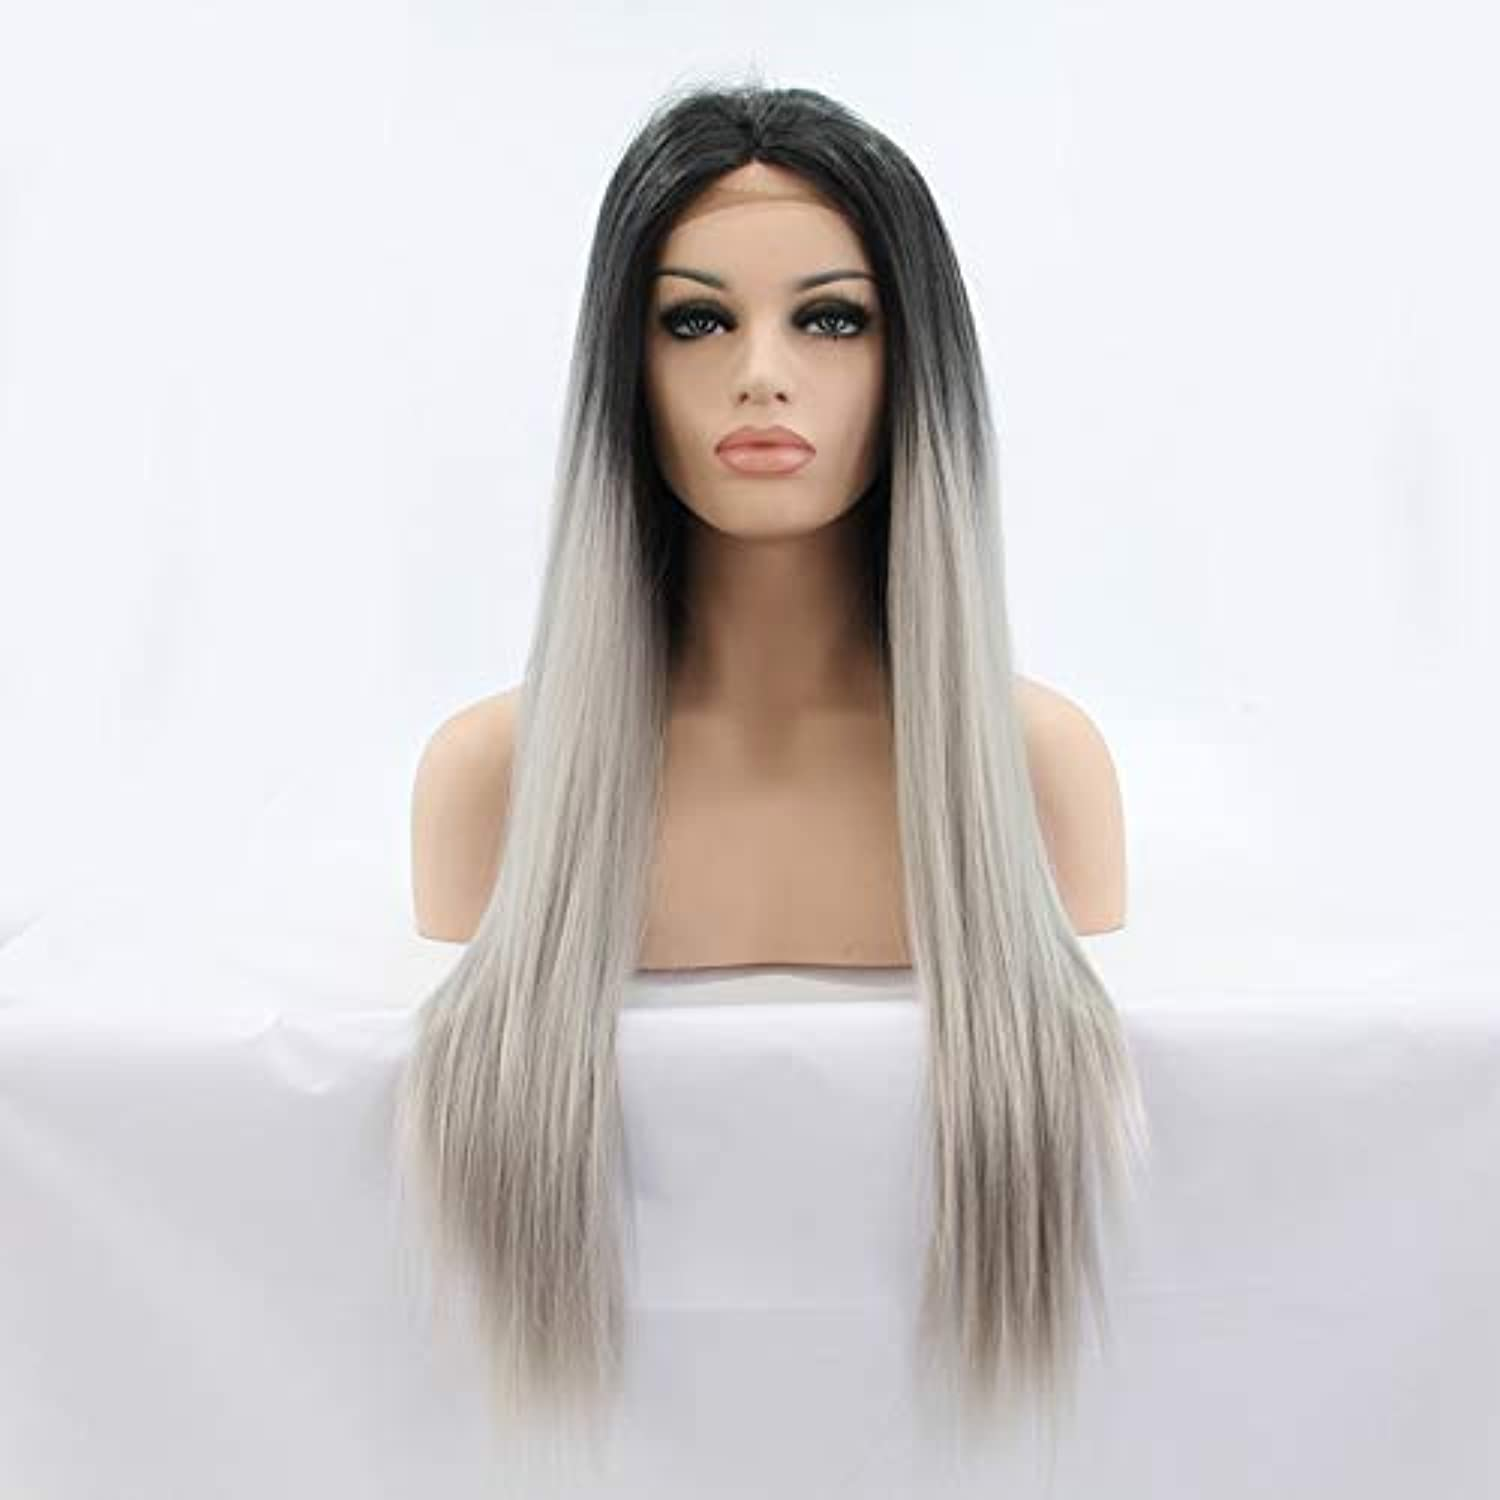 ZhengFei Long Straight Women Synthetic Hair Wigs For Women Andromeda Ombre Dark Root Grey color Middle Part Womens Cosplay Halloween Costume Party Hair Wigs +1Pcs Wig Cap Wig Lady